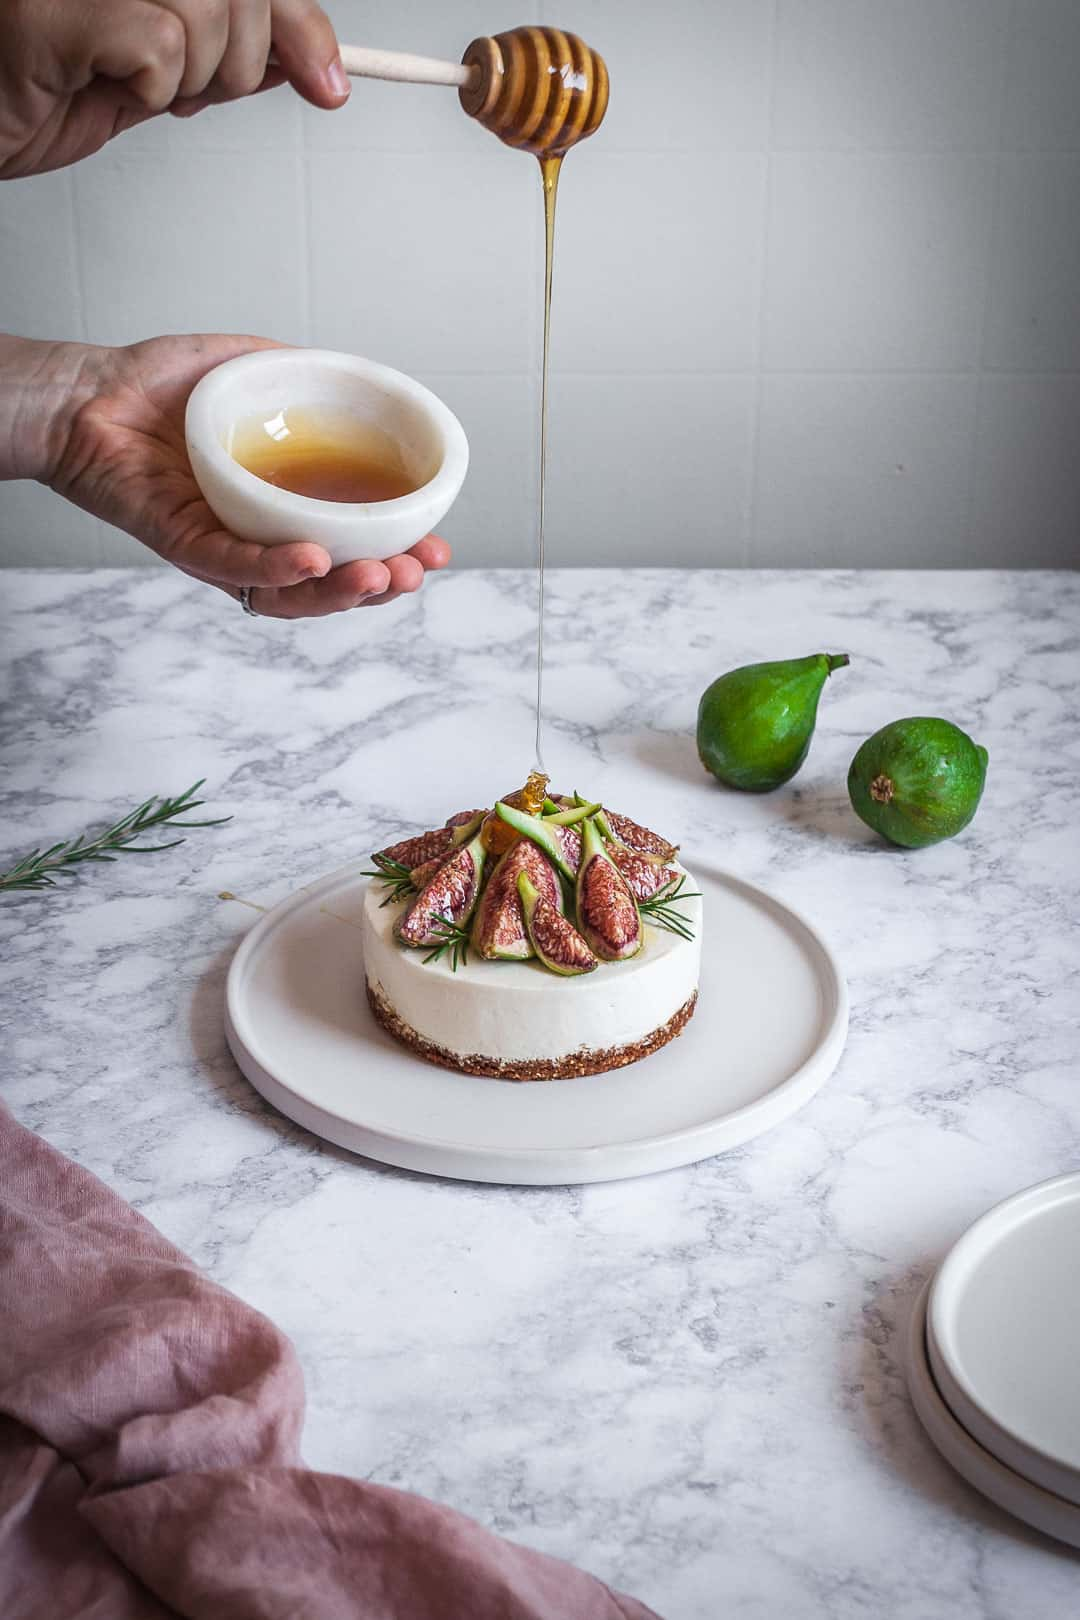 Honey orange cheesecake with figs and rosemary almond crust on a marble backdrop - angled shot of hand holding honey bowl drizzling honey with white plates, green figs